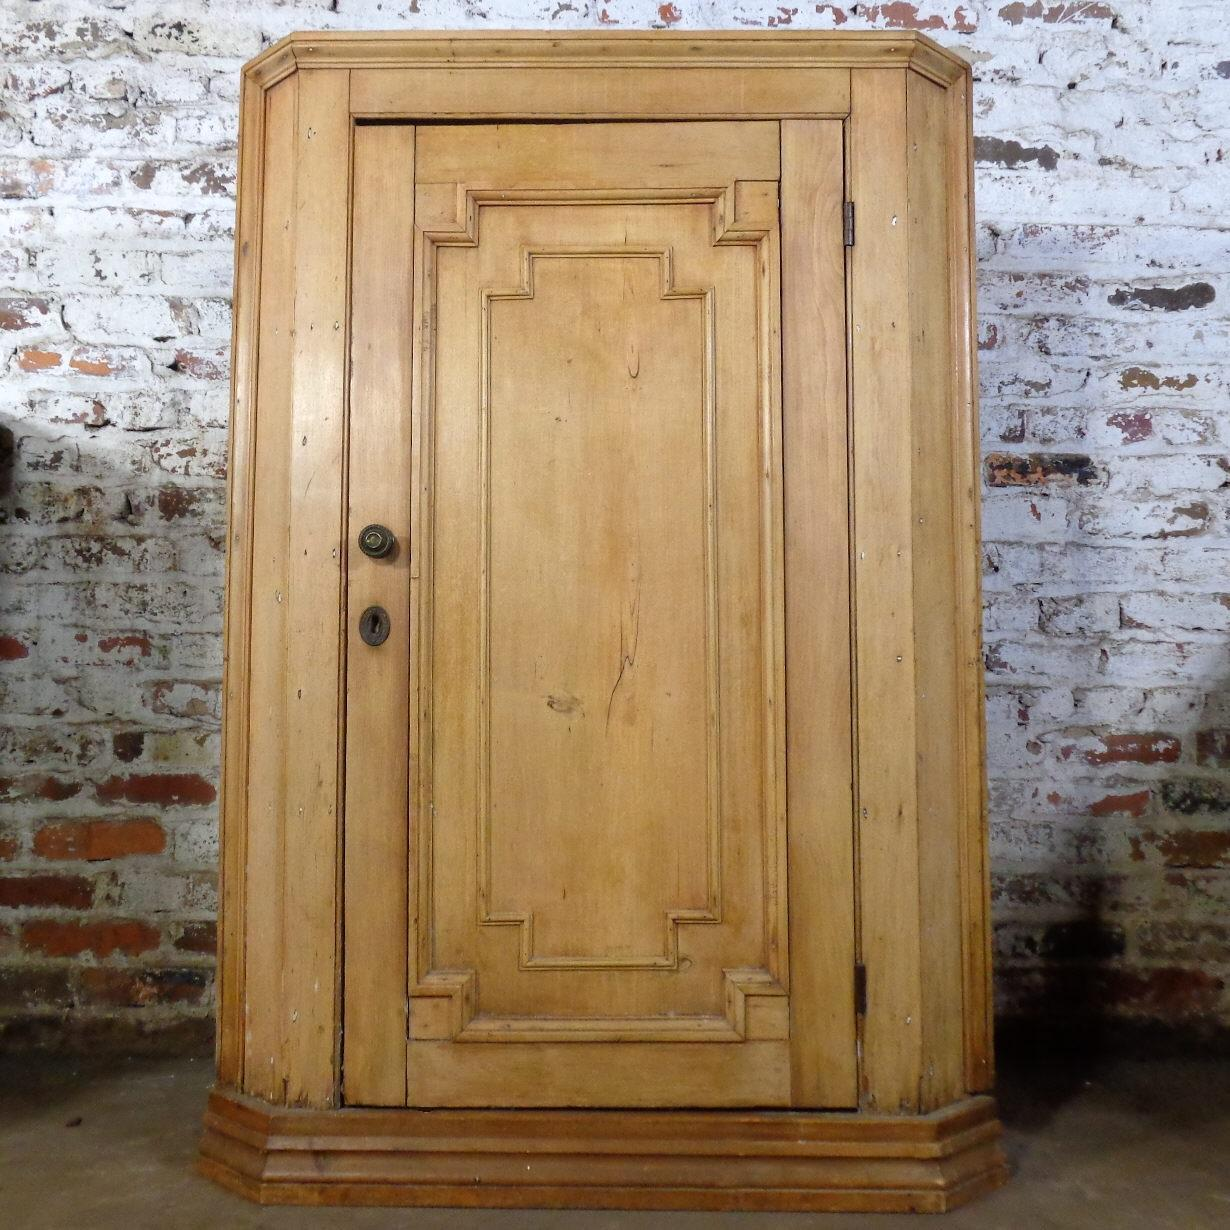 Roll over Large image to magnify, click Large image to zoom - 19th Century Antique Swedish Pine Corner Cabinet From